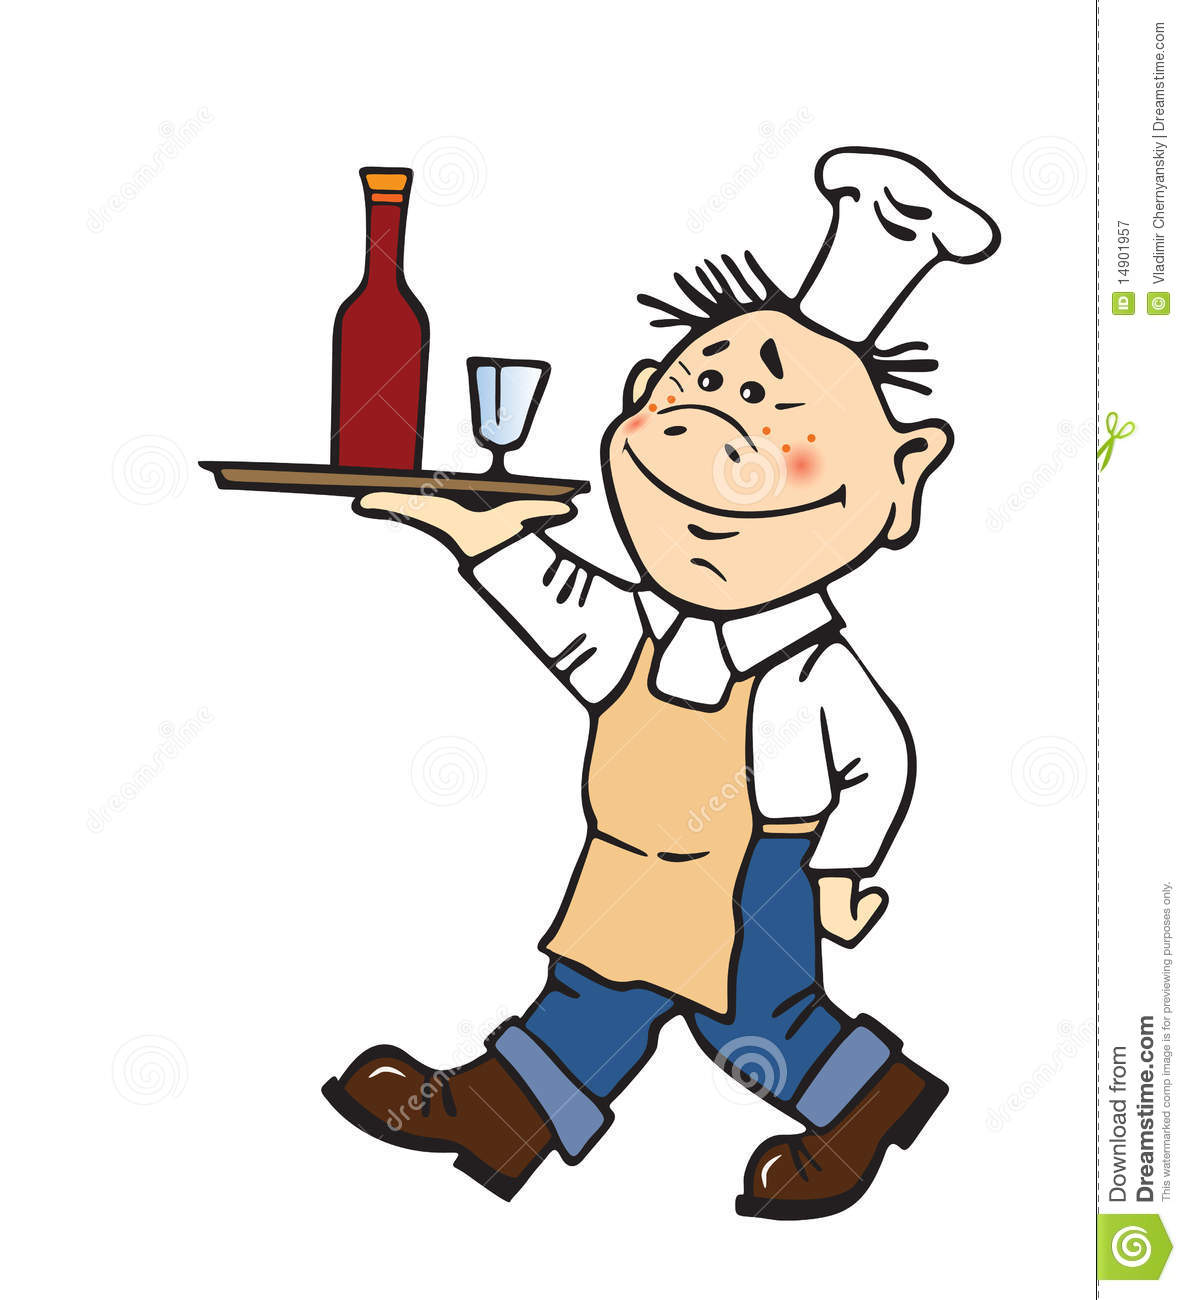 Waiter carrying tray clipart graphic library Waiter Pictures   Free download best Waiter Pictures on ... graphic library